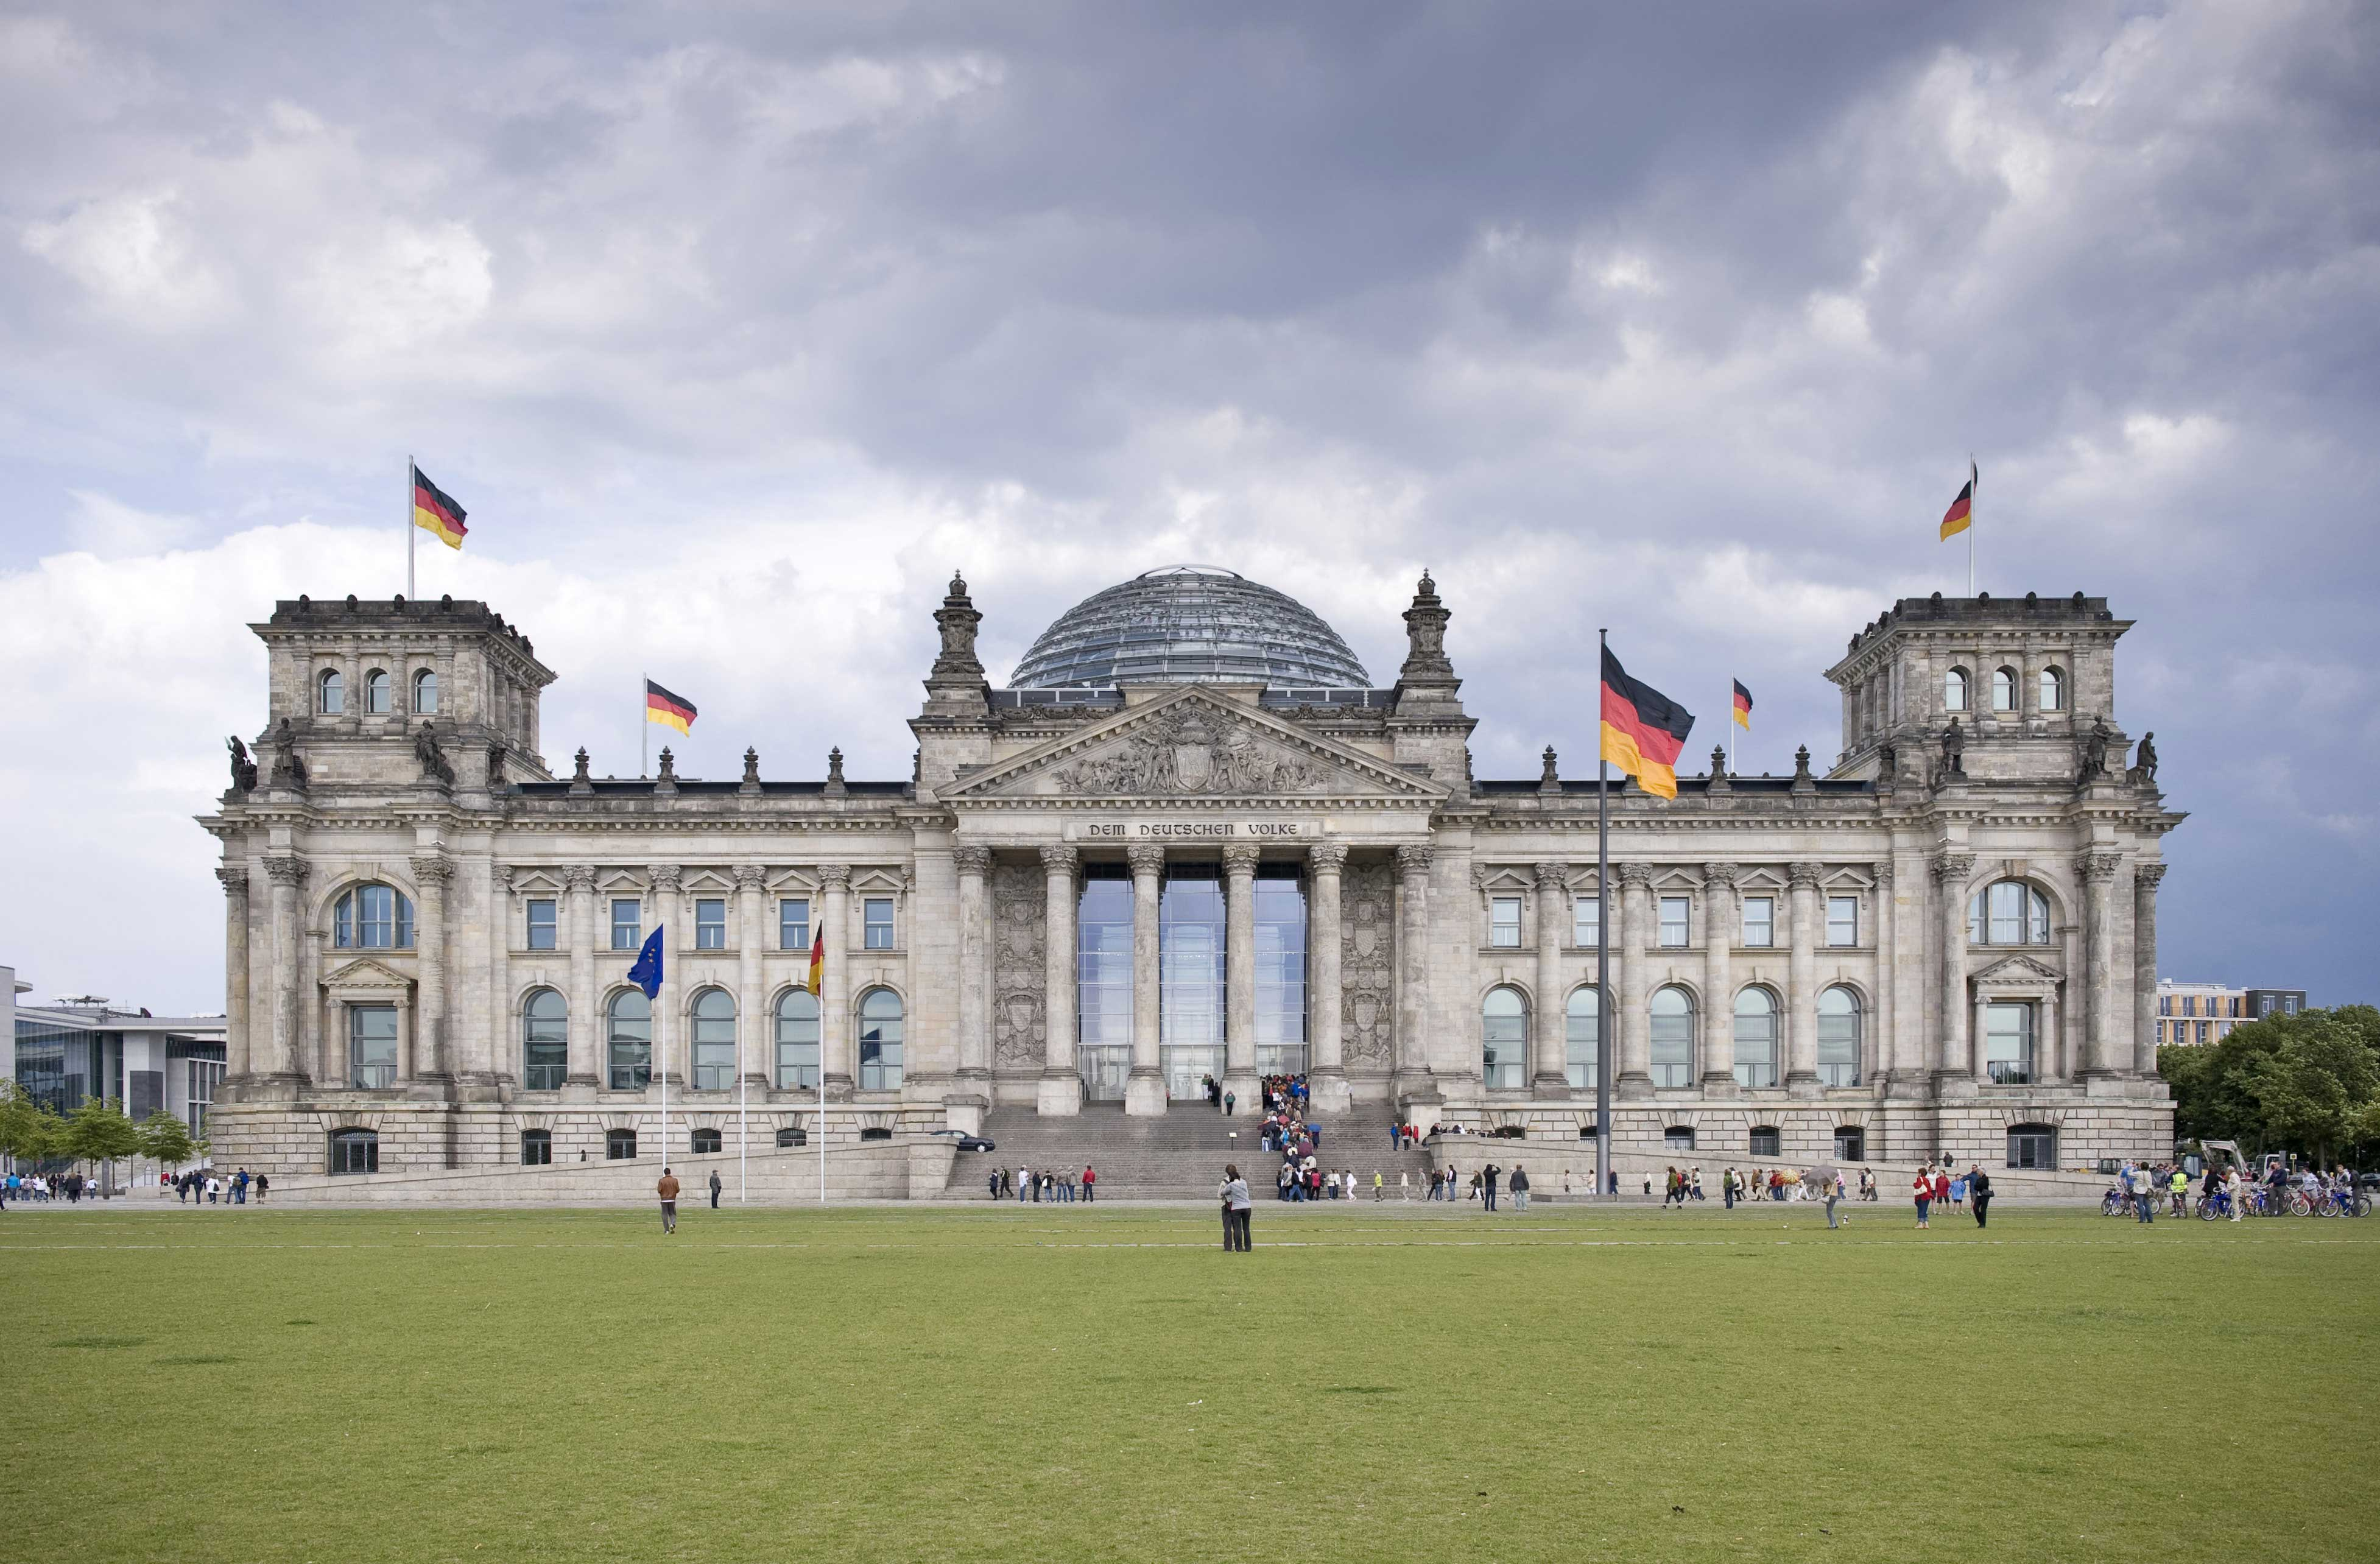 Opinions on Reichstag